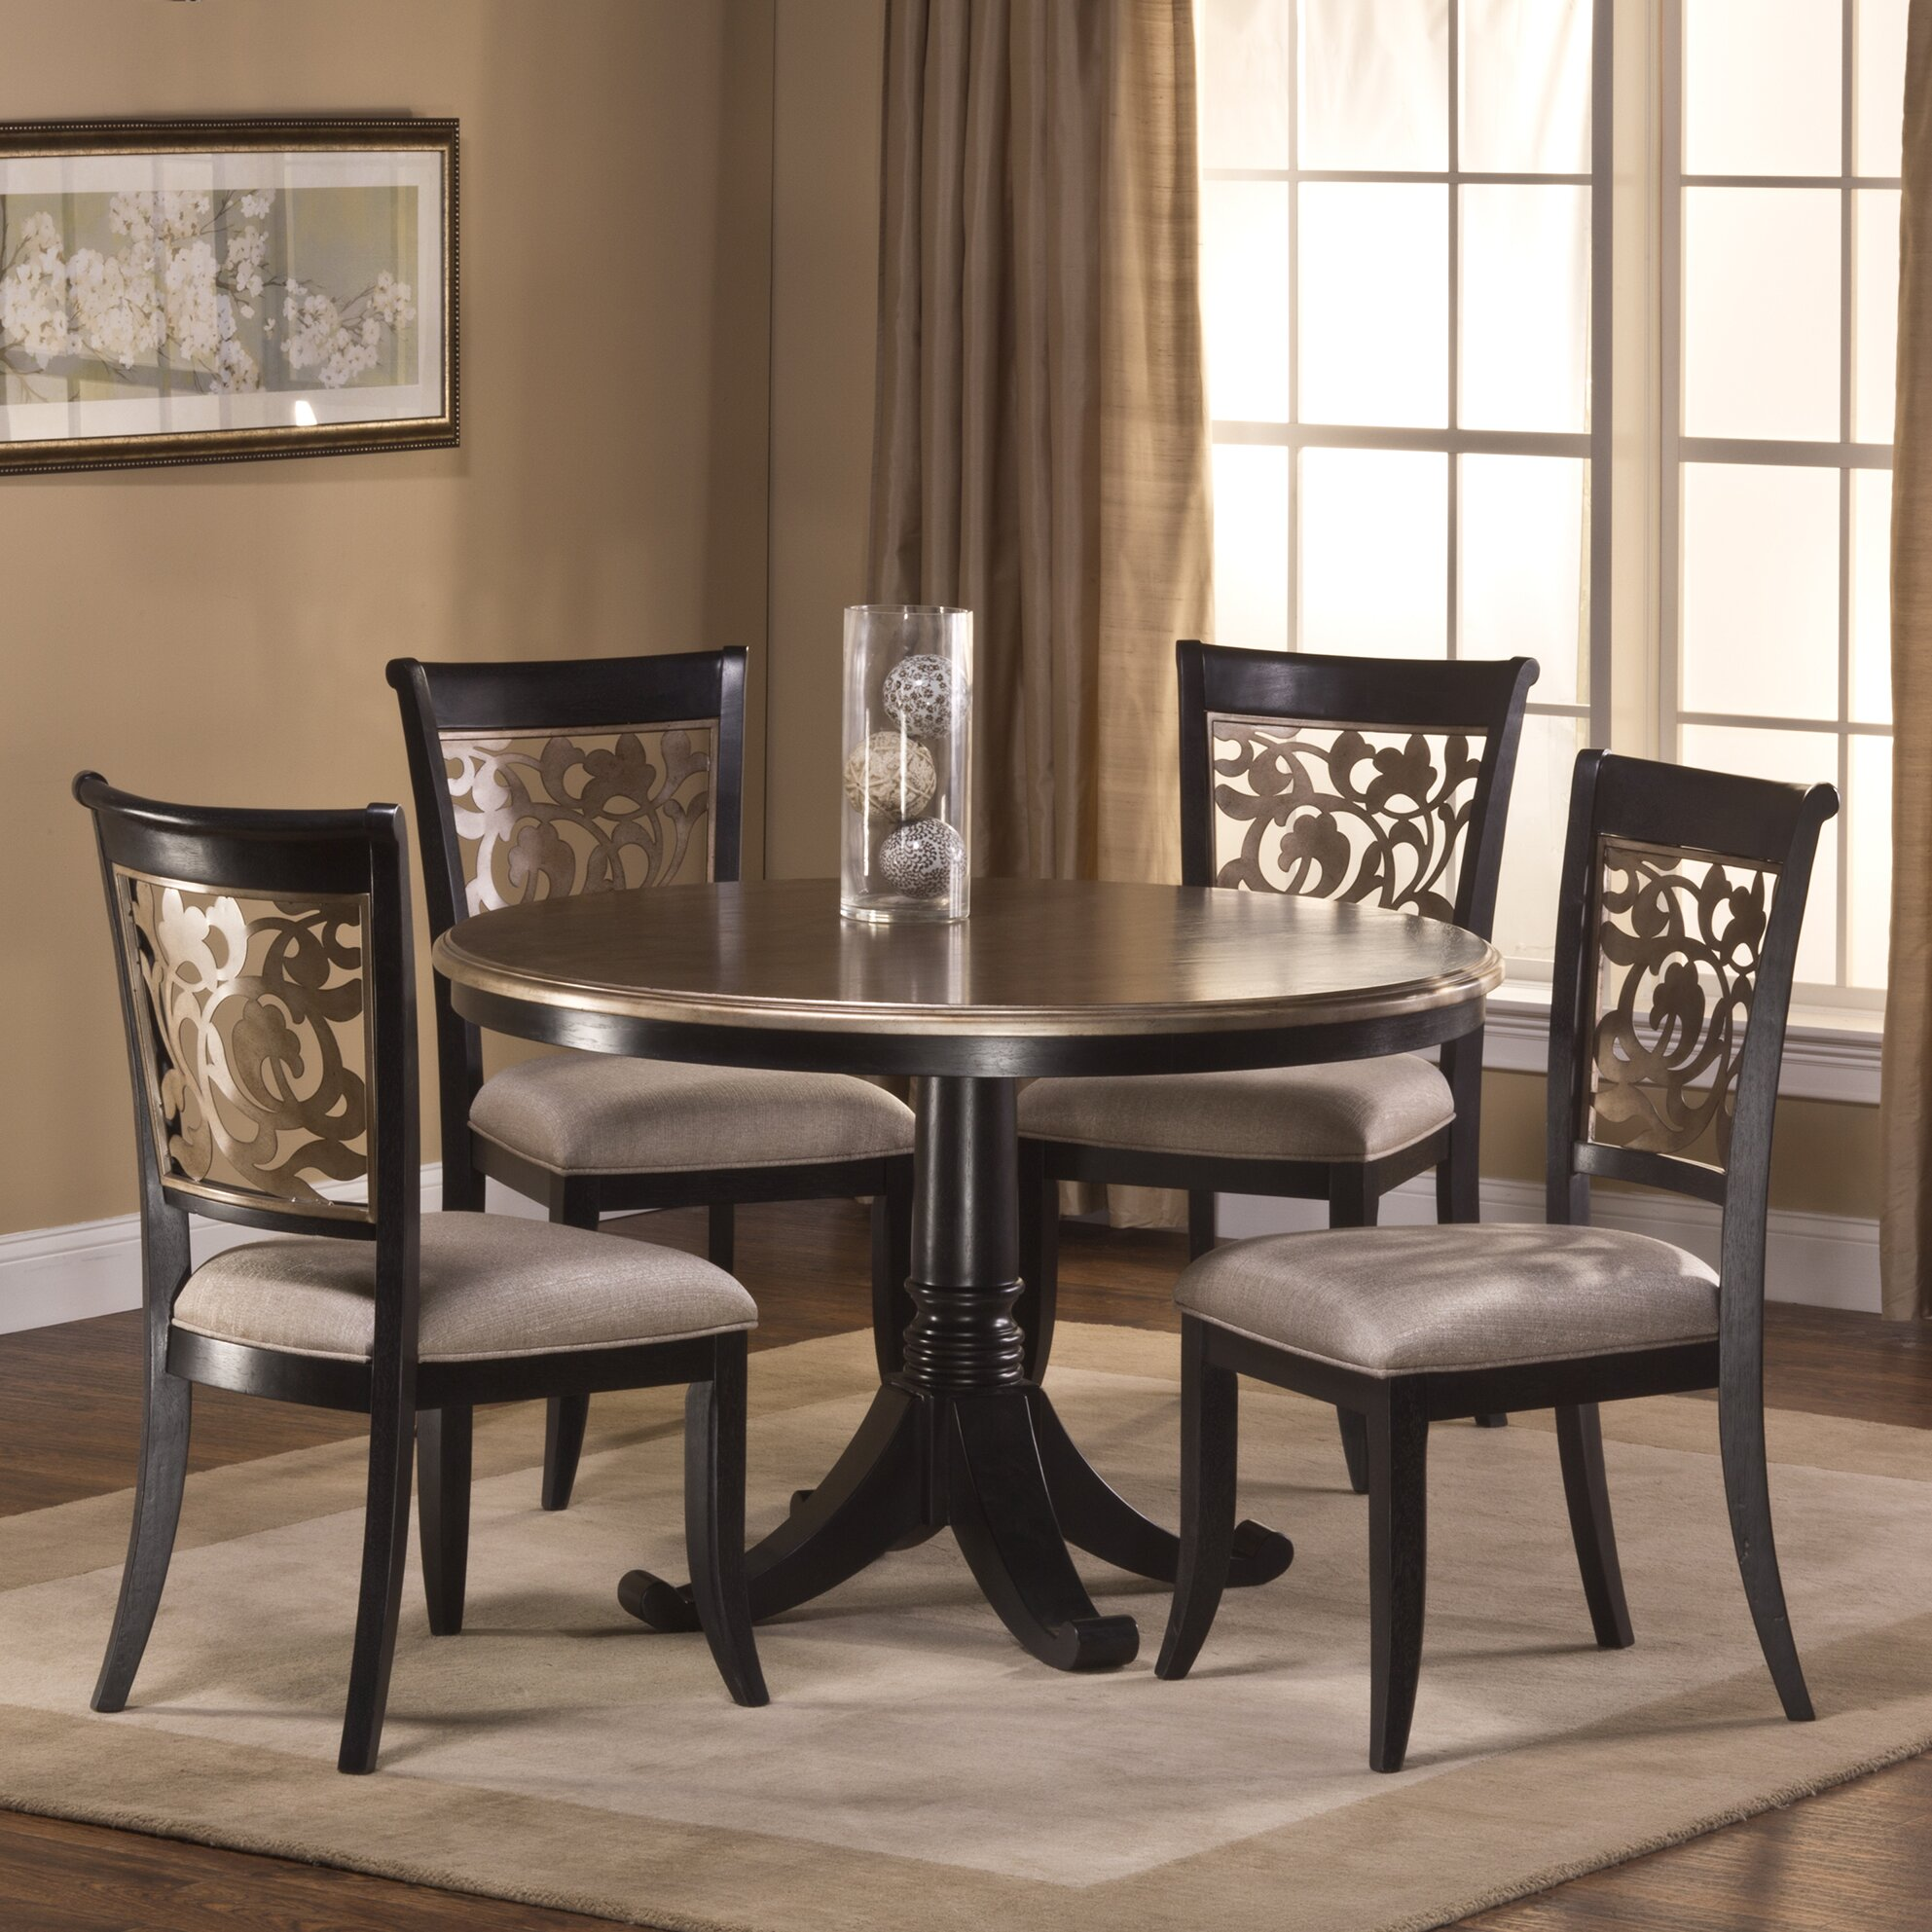 Hillsdale bennington 5 piece dining set reviews wayfair for Furniture 2 day shipping